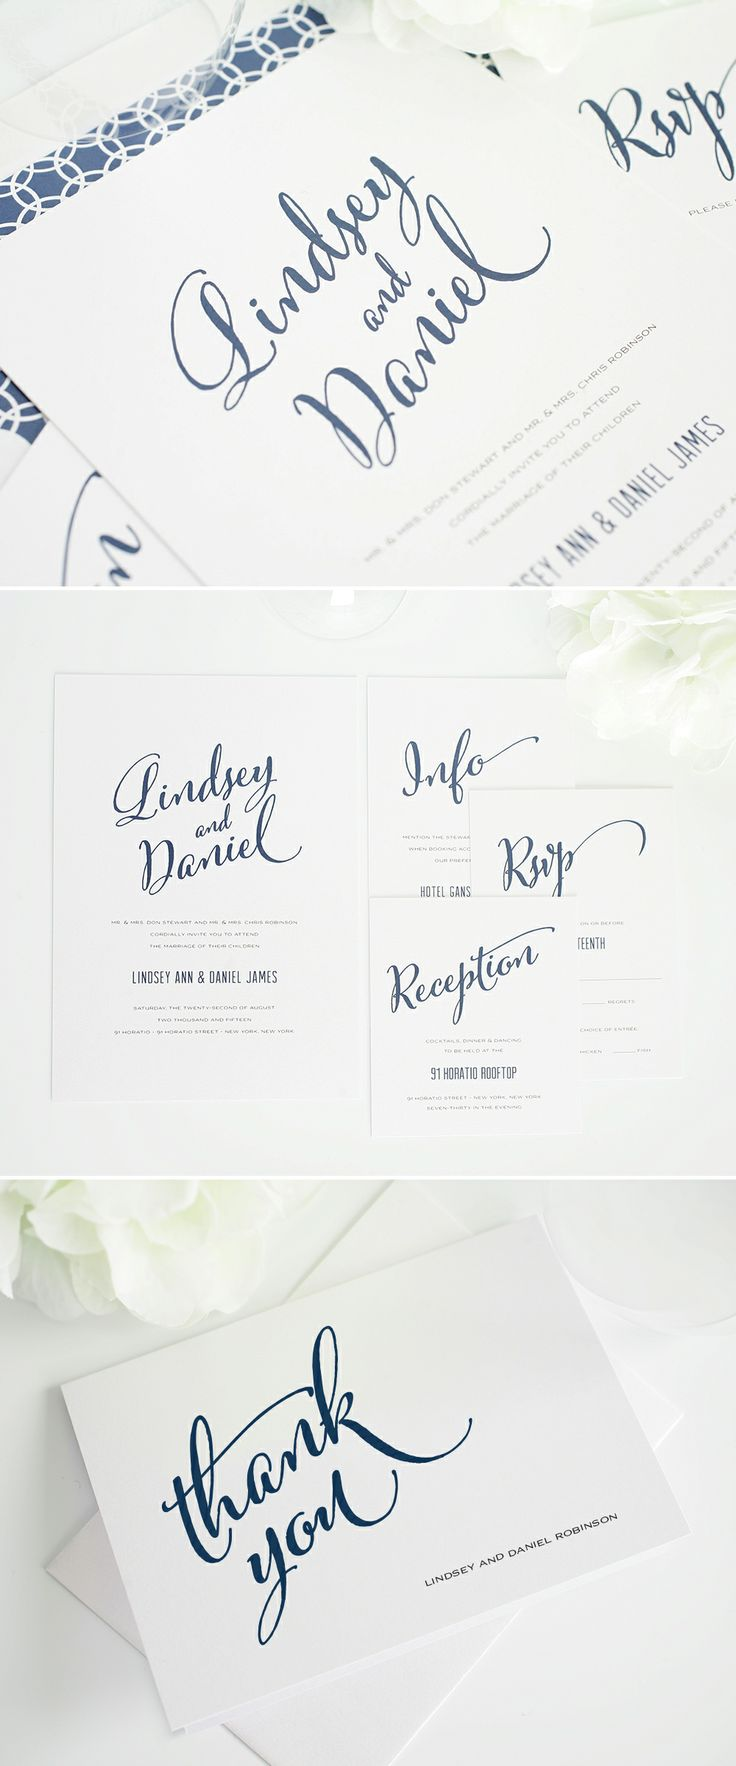 modern script wedding invitations #invitations #thankyou #stationery http://www.shineweddinginvitations.com/wedding-invitations/modern-script-wedding-invitation